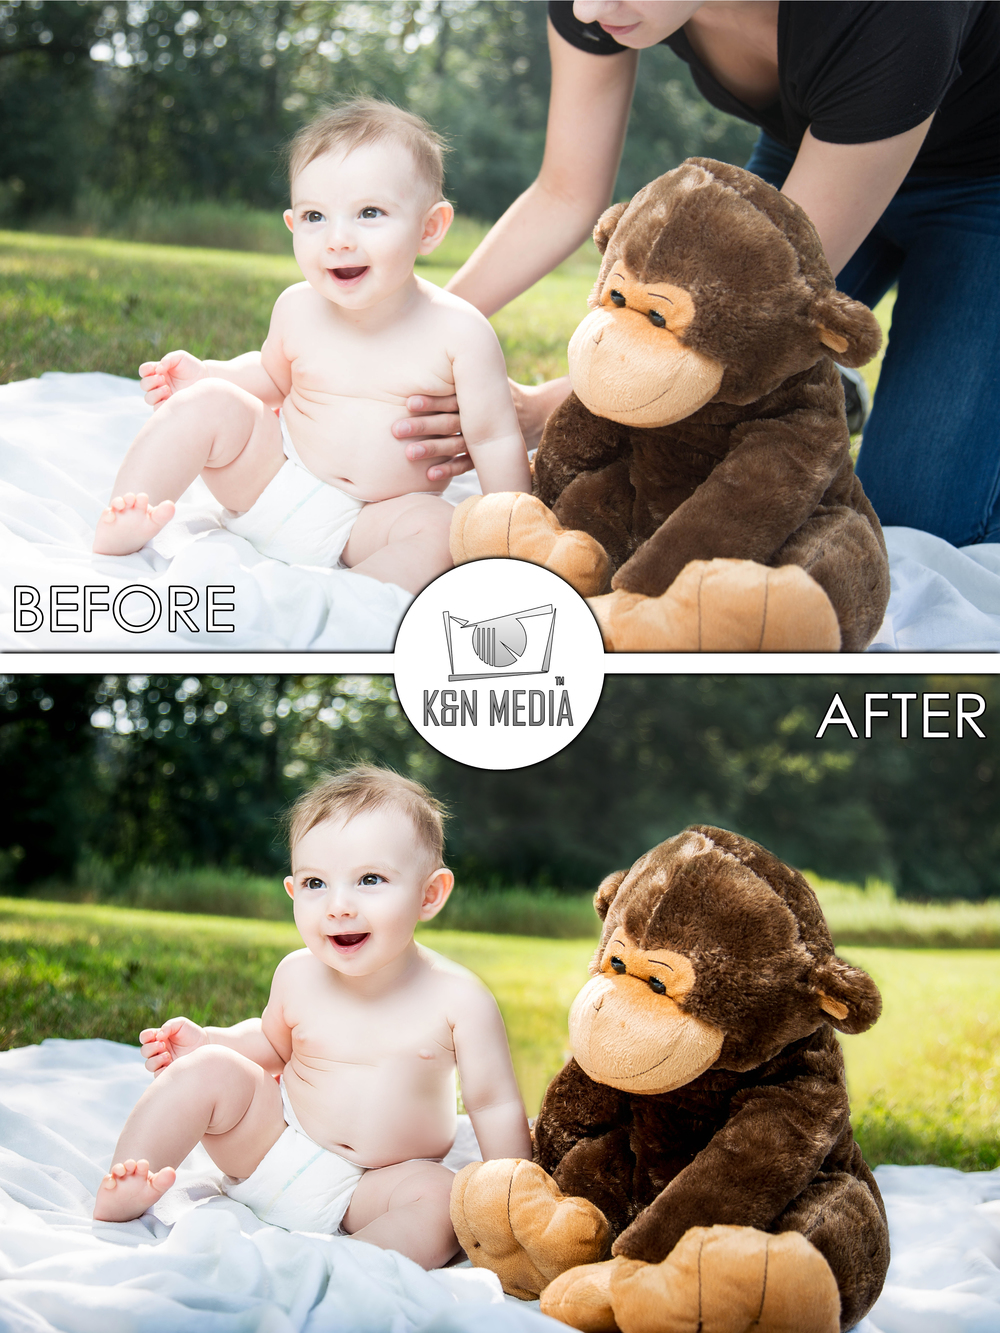 Julian Thomas Before & After Promotional Ad Image - K&N Media.jpg